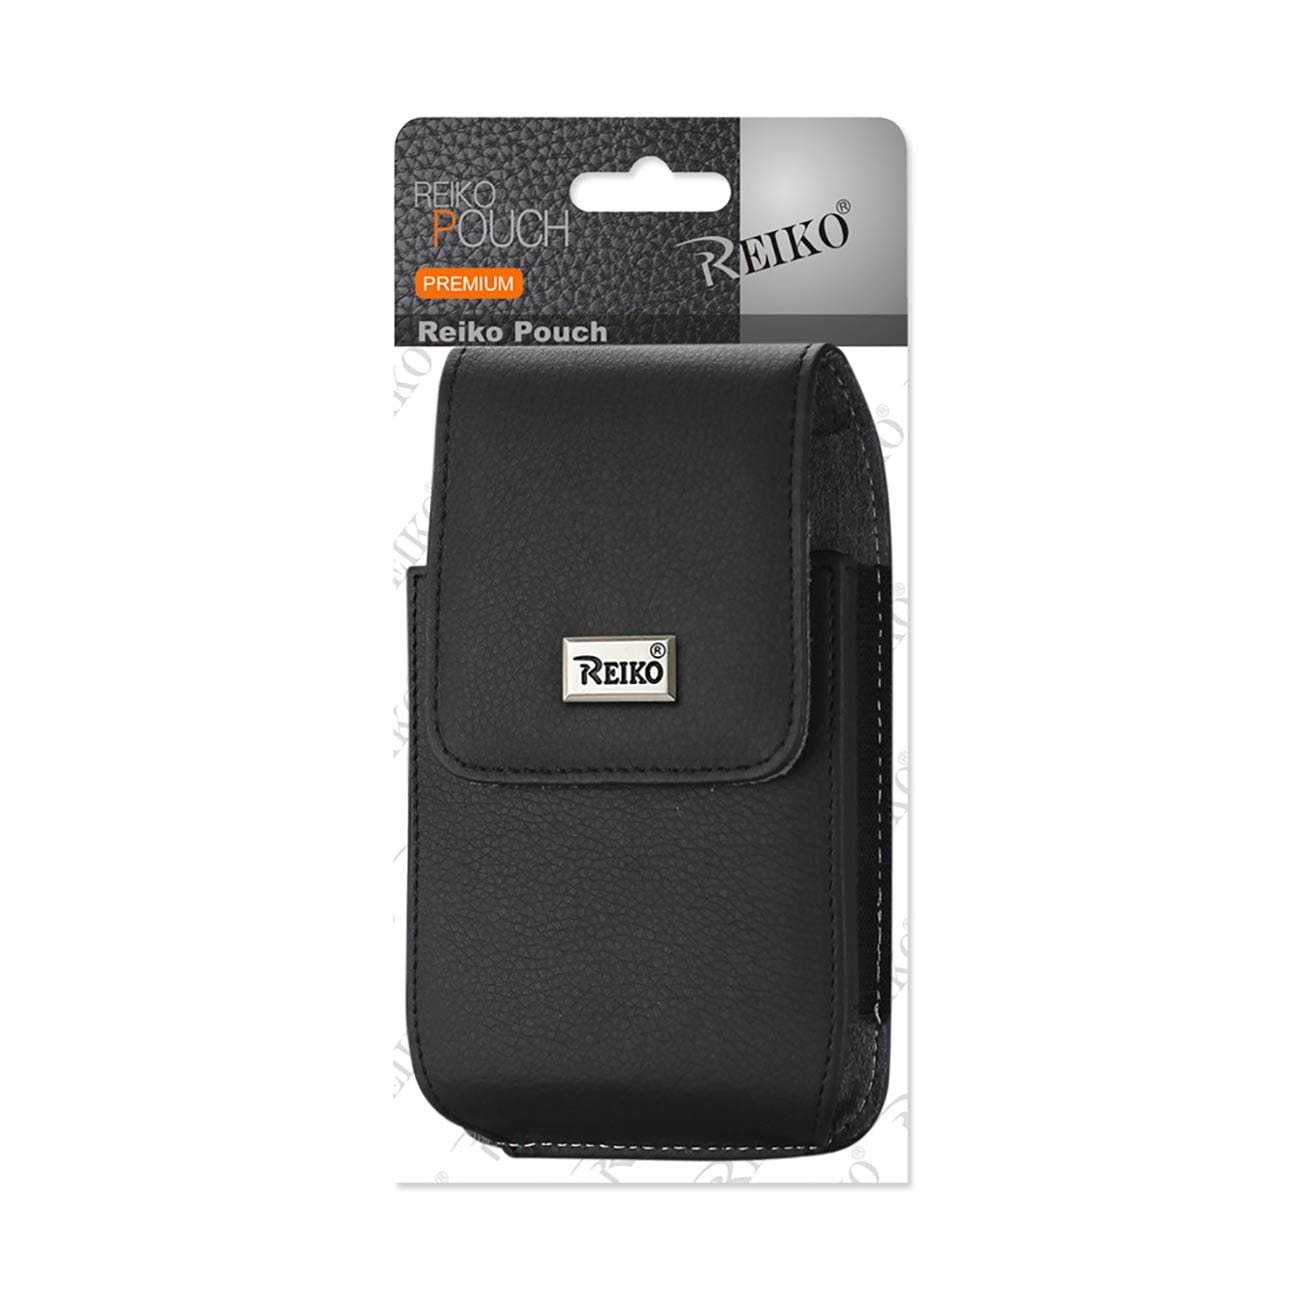 Leather Vertical Pouch With Metal Logo In Black (6.4*3.5*0.7 Inches)